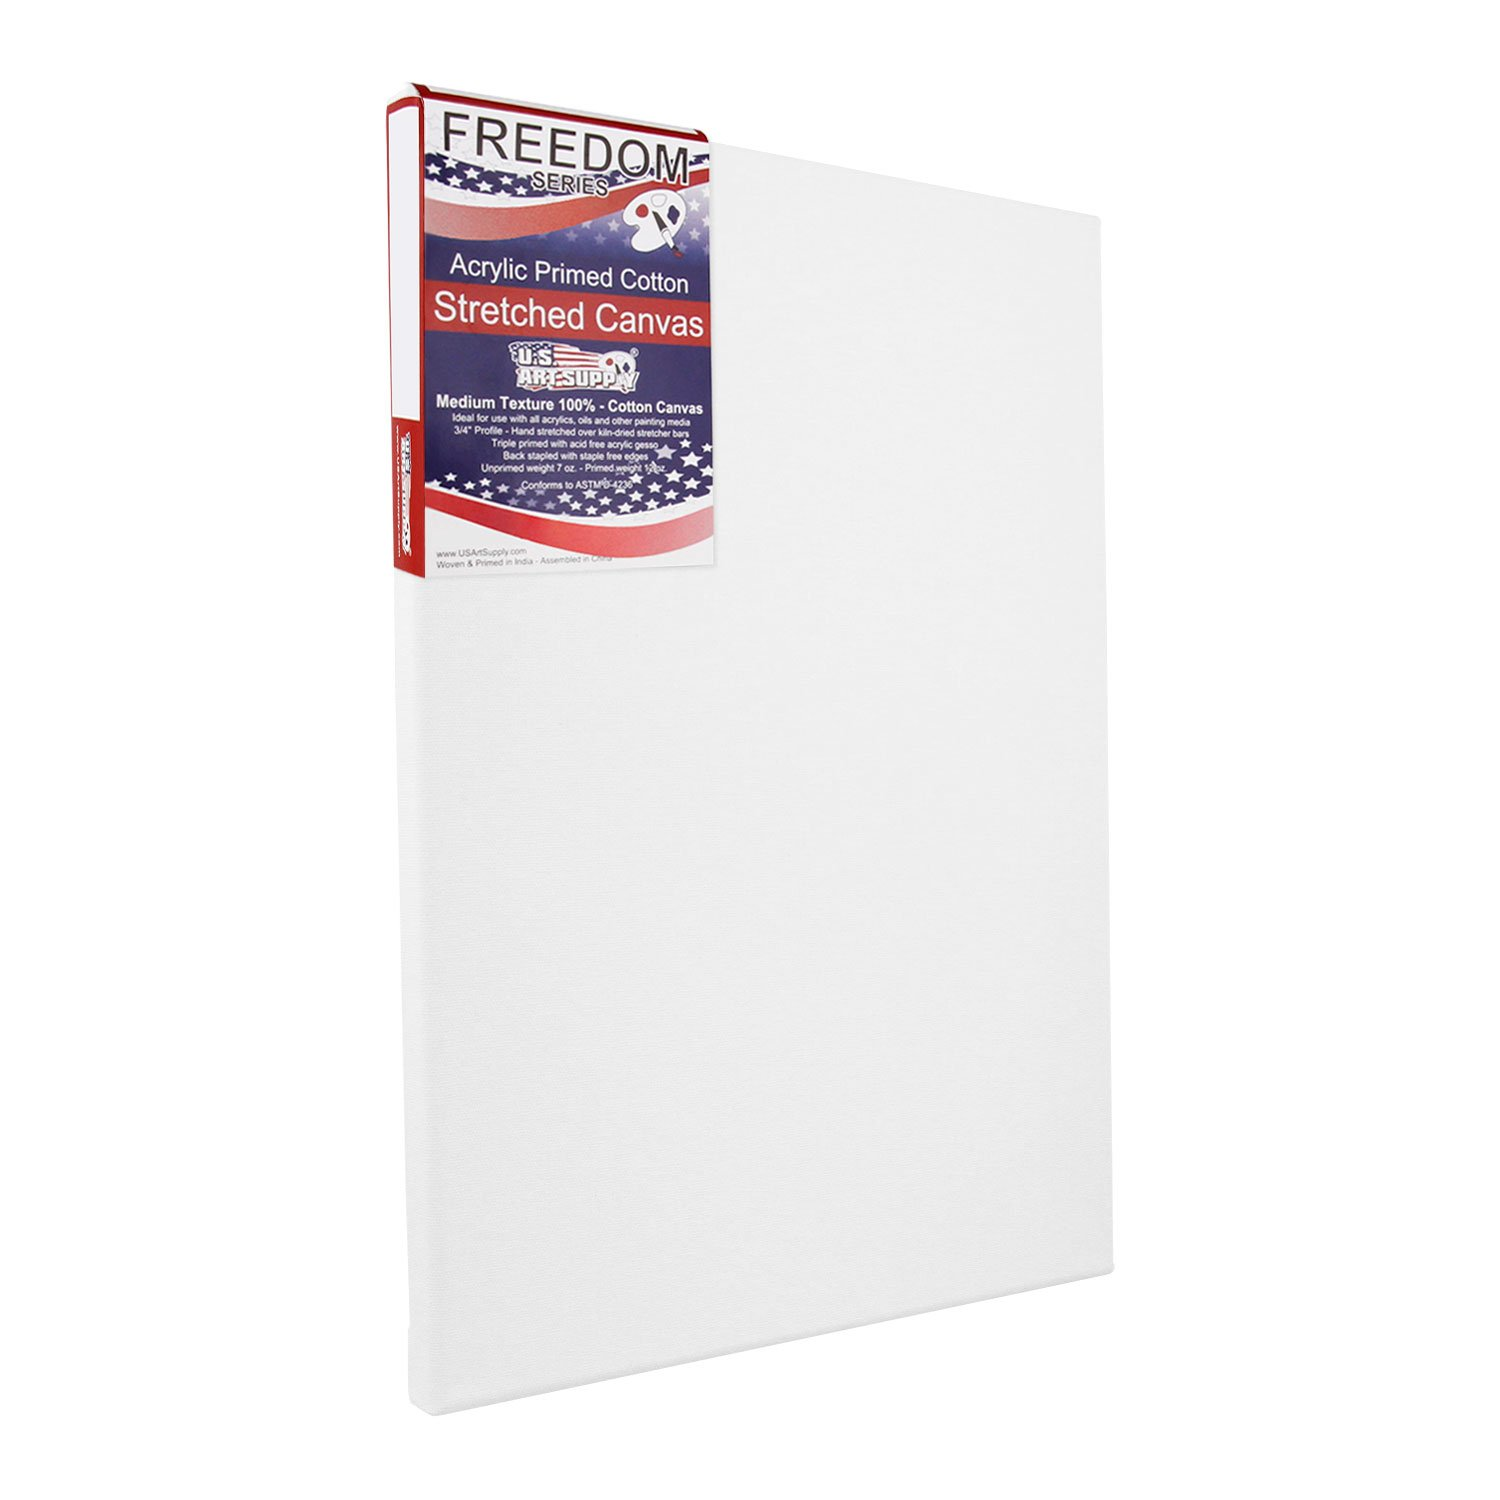 US Art Supply 24 X 36 inch Professional Quality Acid Free Stretched Canvas 6-Pack - 3/4 Profile 12 Ounce Primed Gesso - (1 Full Case of 6 Single Canvases) by US Art Supply (Image #2)